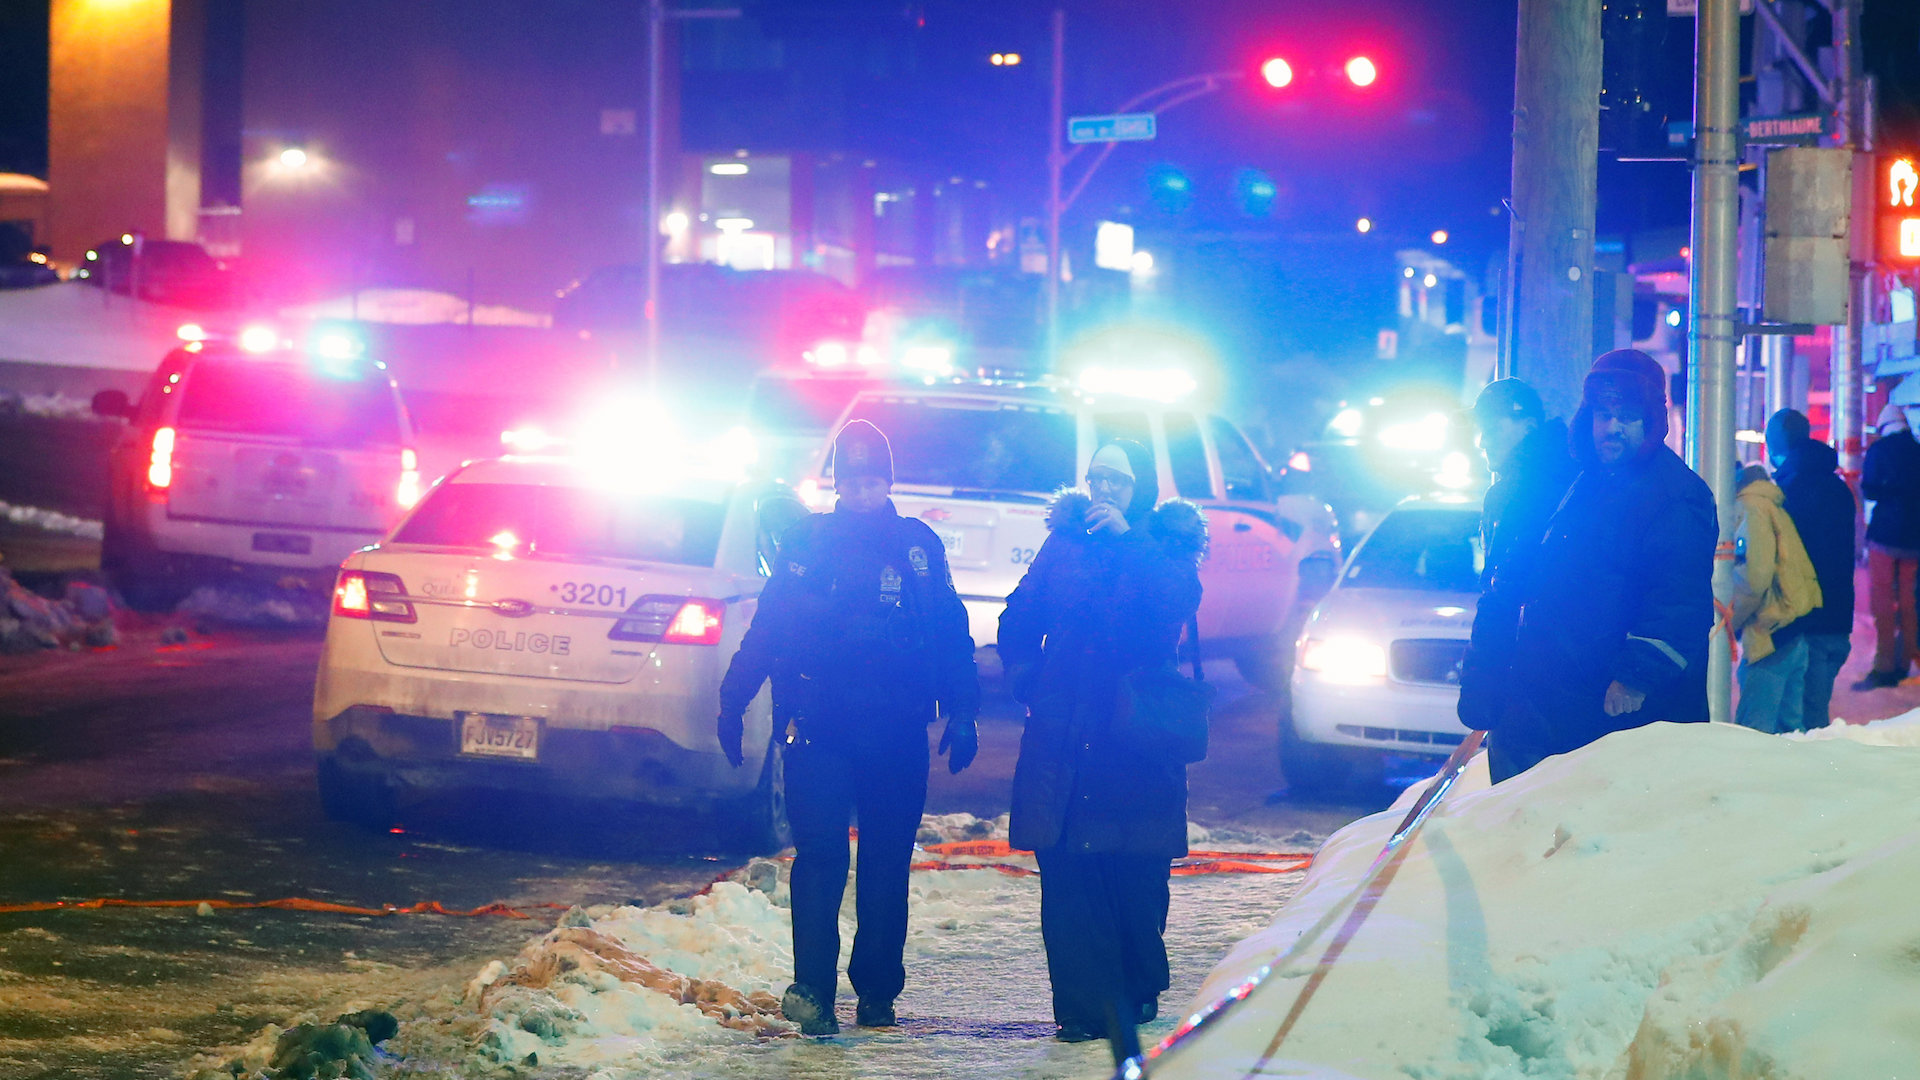 Student known for far-right sympathies charged in Quebec City mosque attack